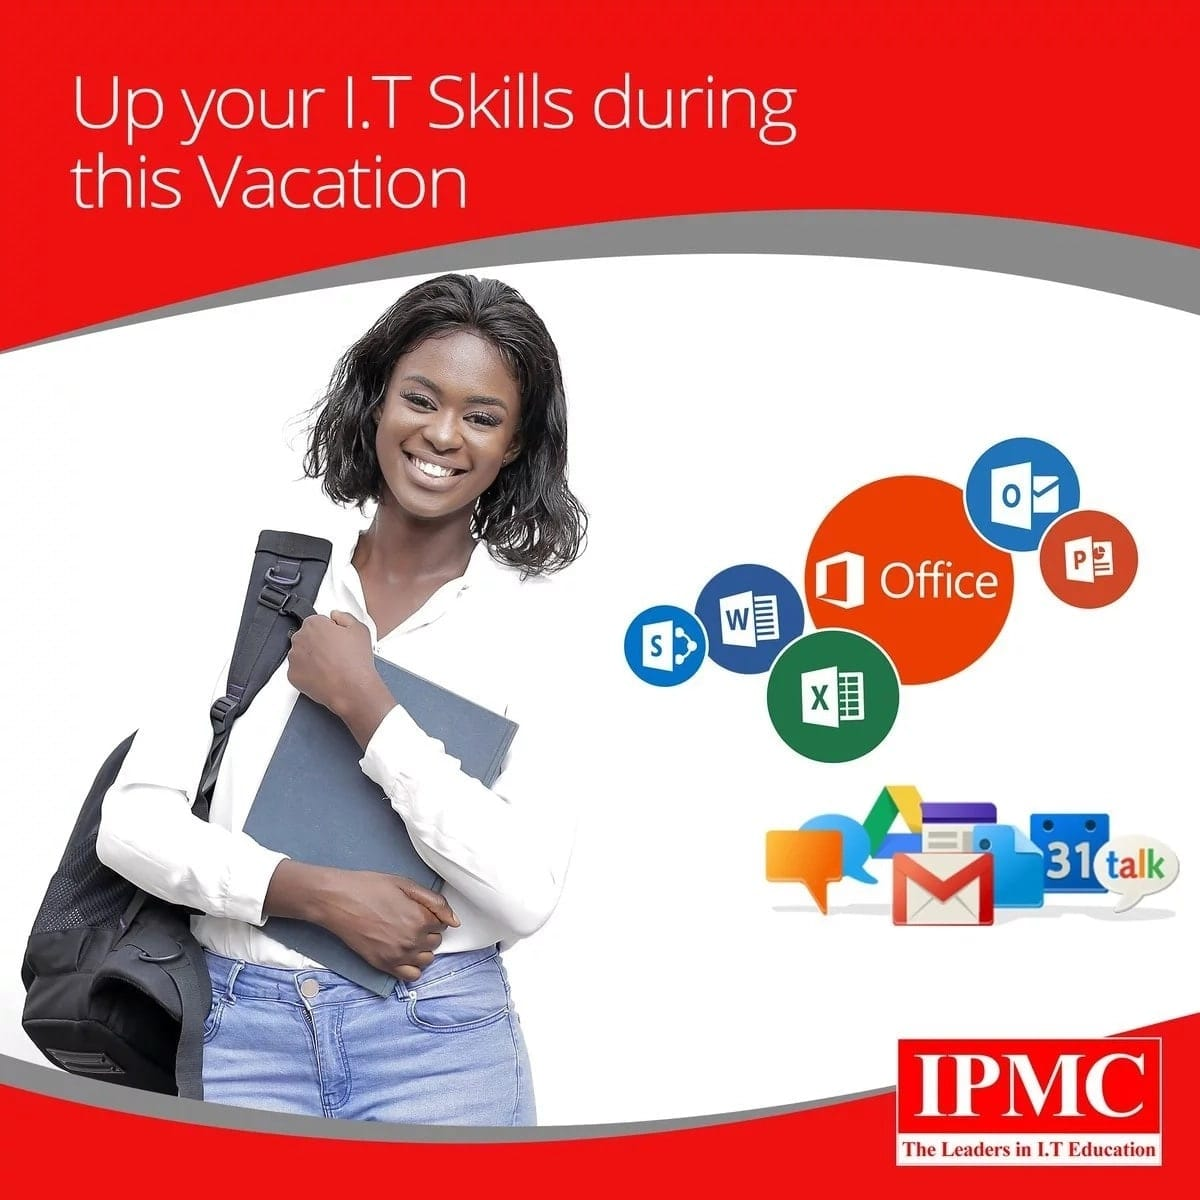 ipmc head office contact ipmc contact kumasi ipmc takoradi address ipmc postal address